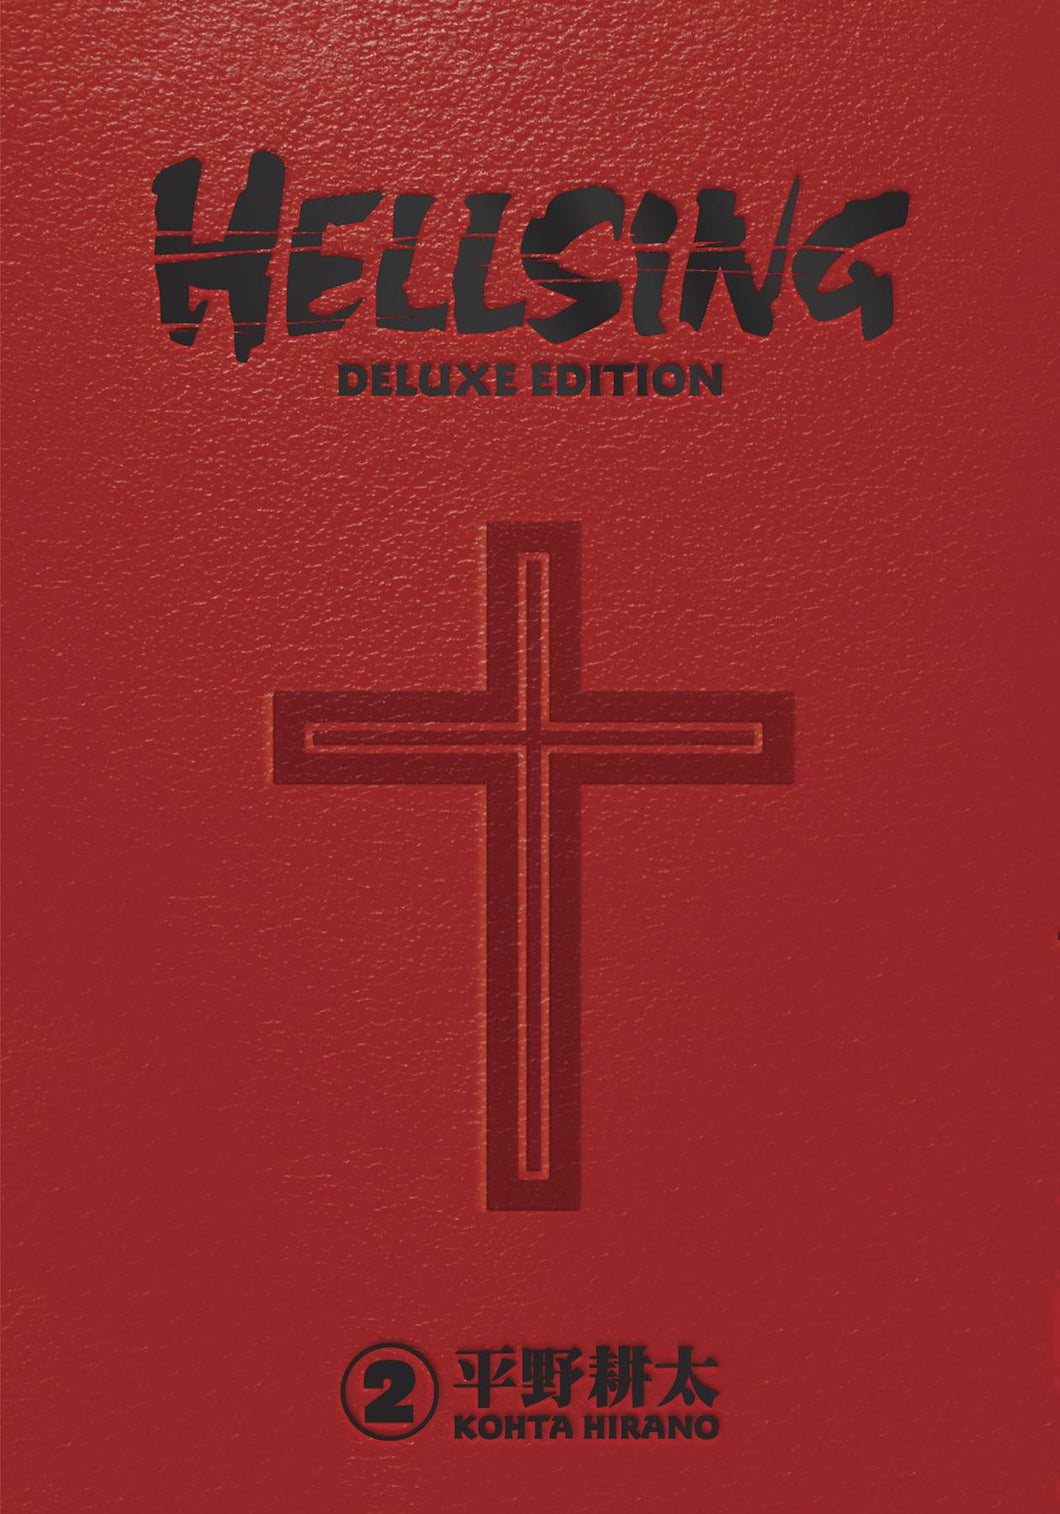 Hellsing Deluxe Edition HC Vol 02 - Books